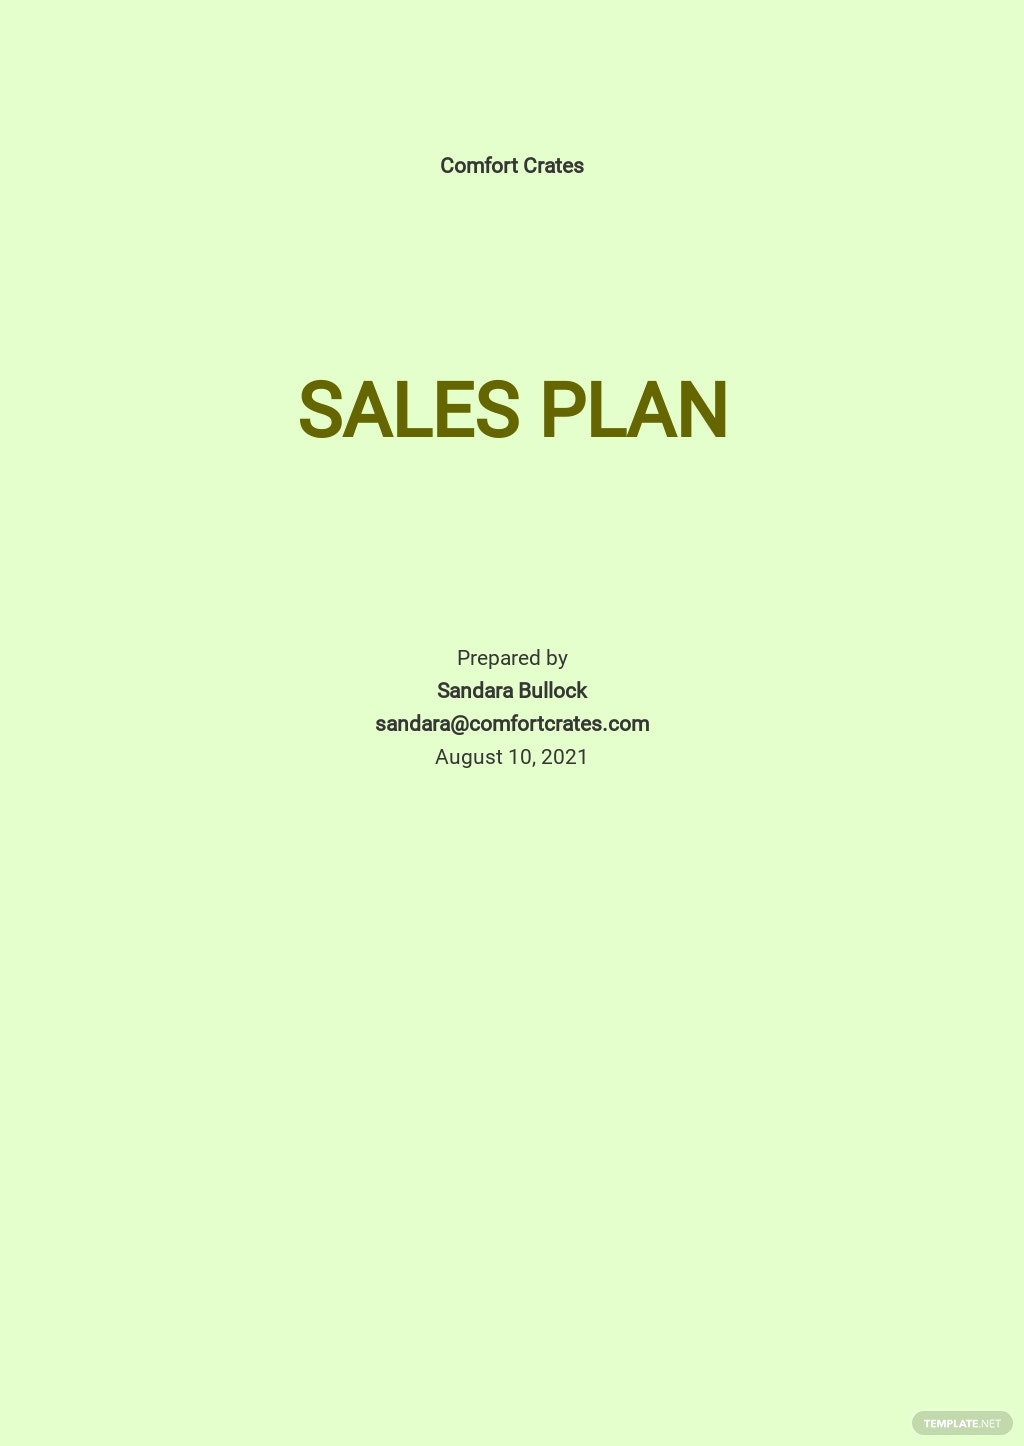 Basic Sales Plan